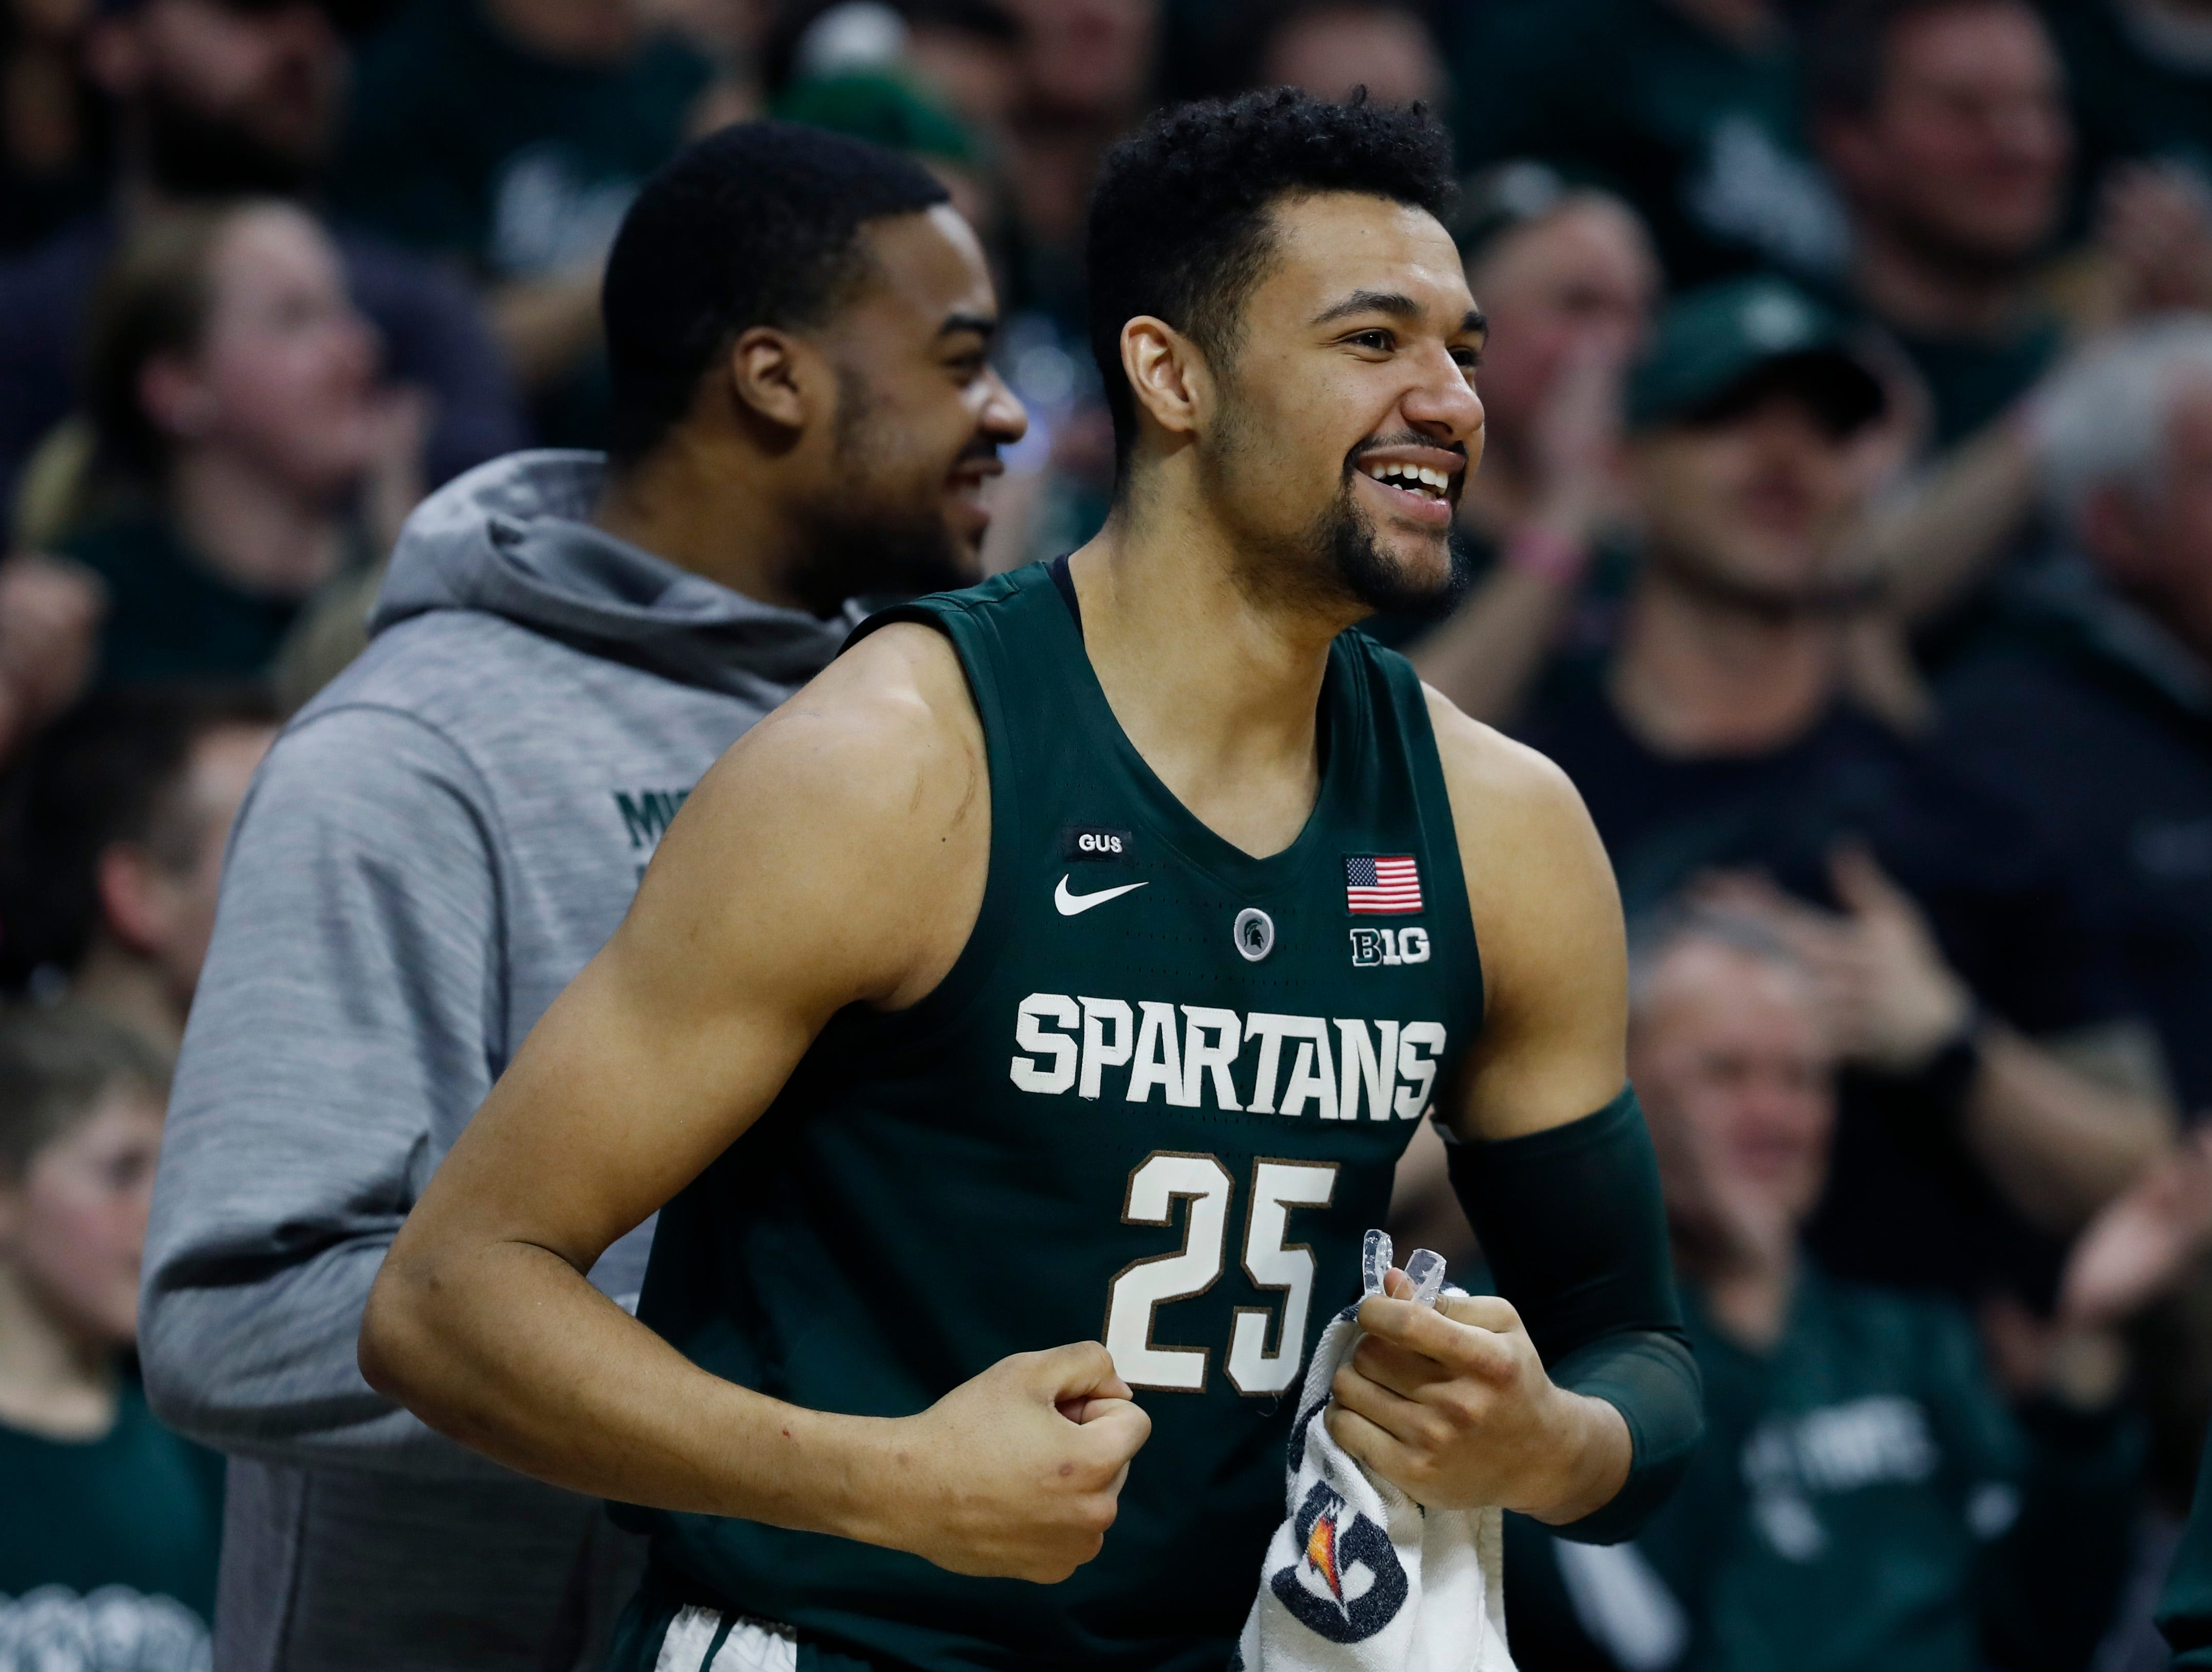 Michigan State forward Kenny Goins reacts during the closing seconds of the second half of an NCAA college basketball game against Nebraska, Tuesday, March 5, 2019, in East Lansing, Mich.